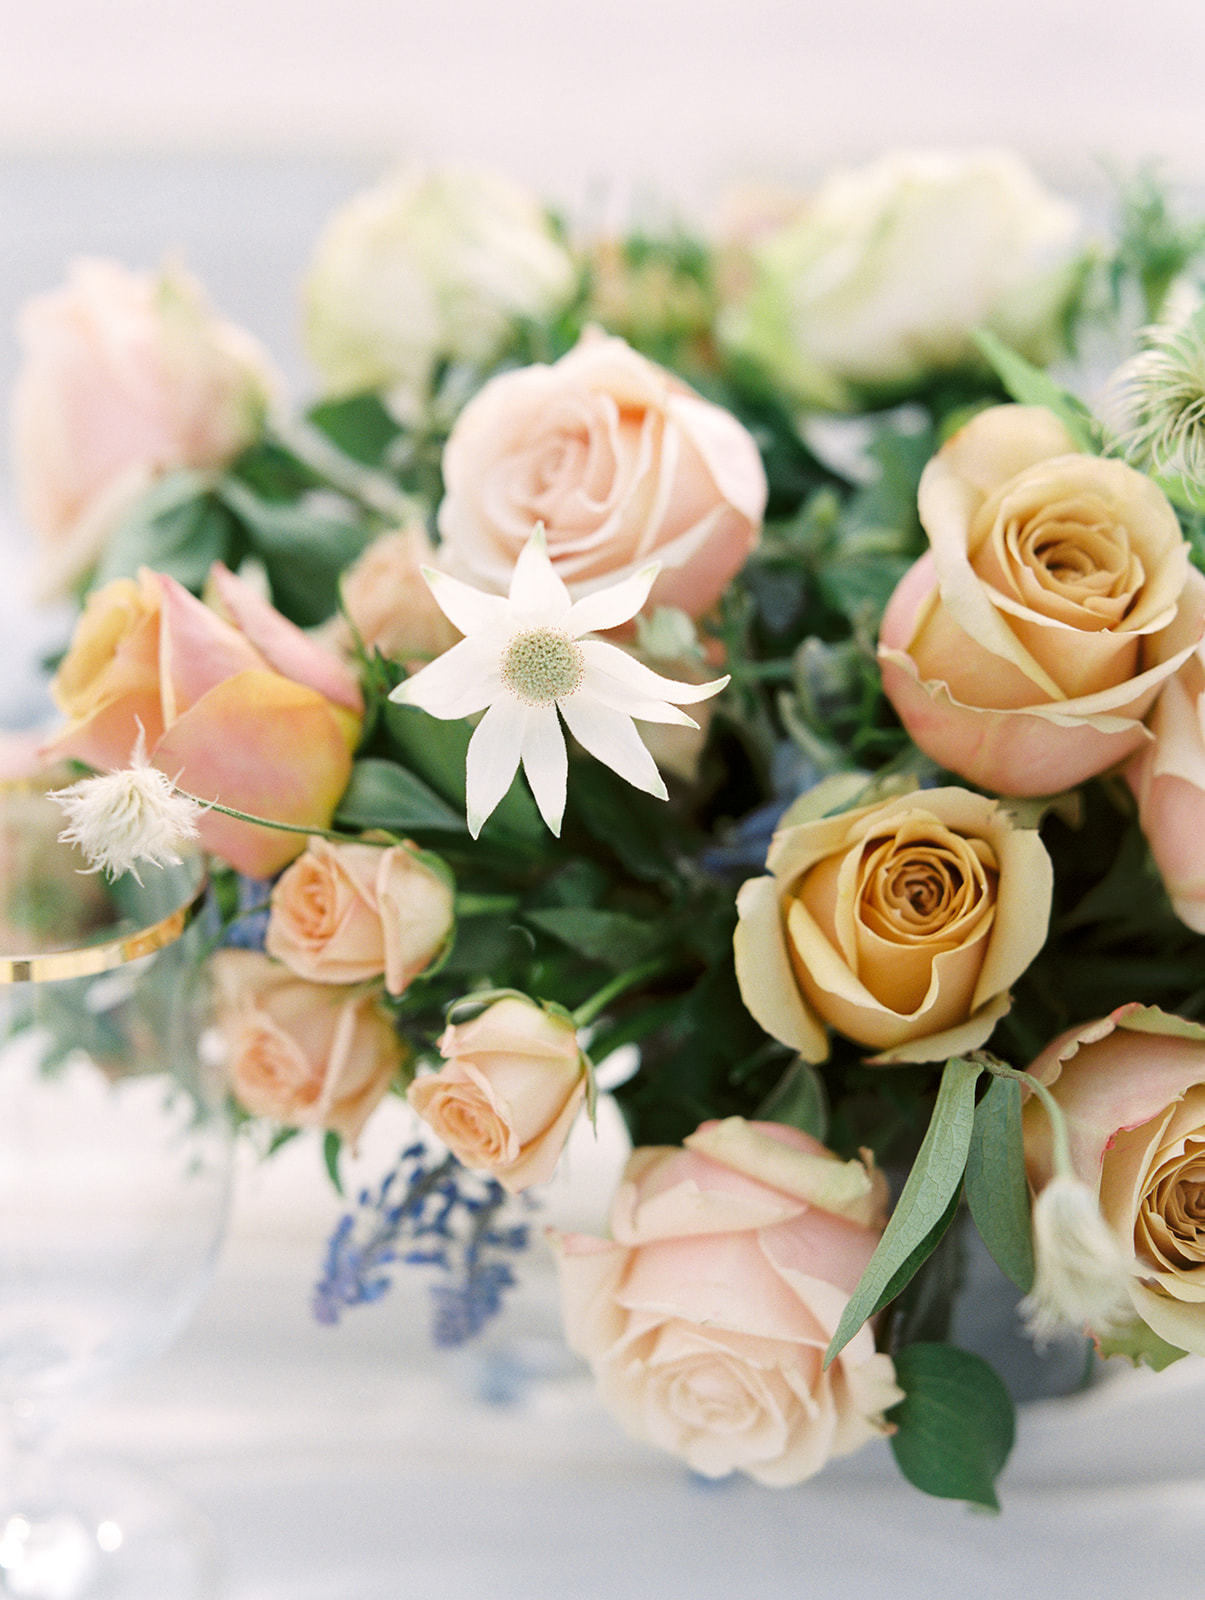 Fine art centerpiece with lush roses